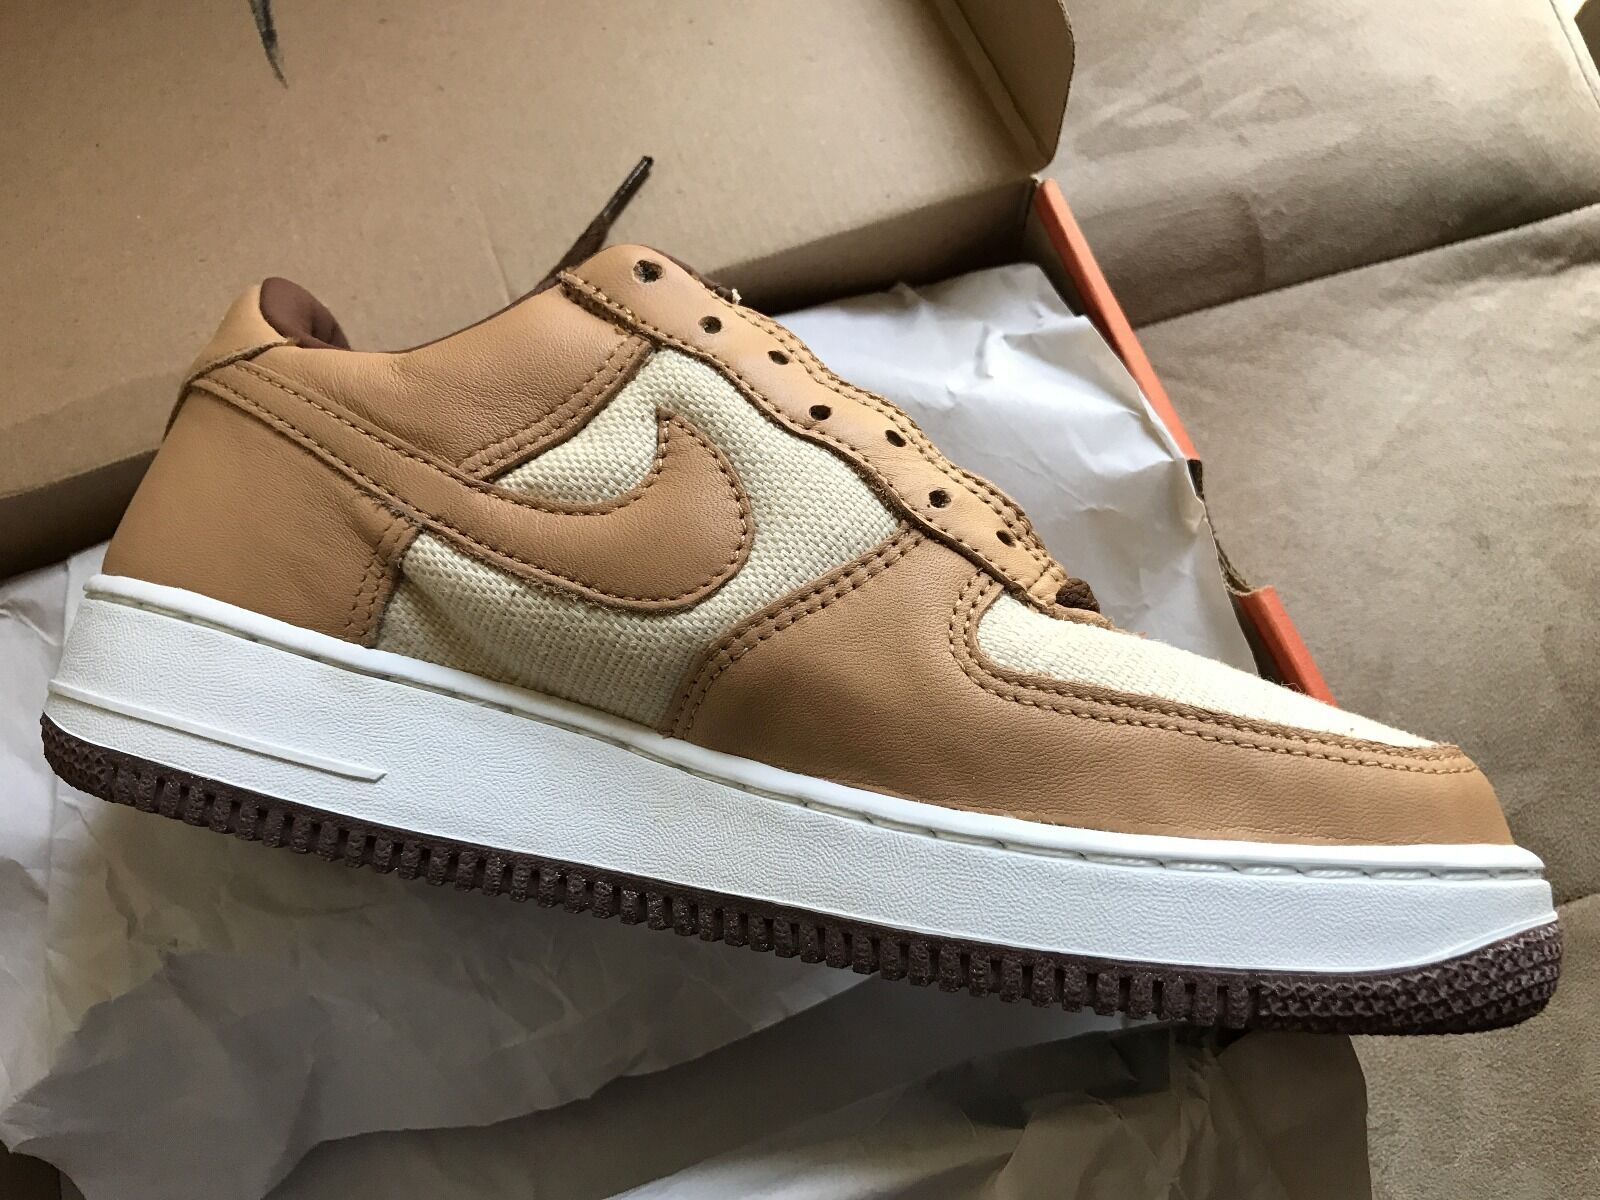 2002 - brand new nike air force 1 naturale vegetazione ghianda brown noi 8